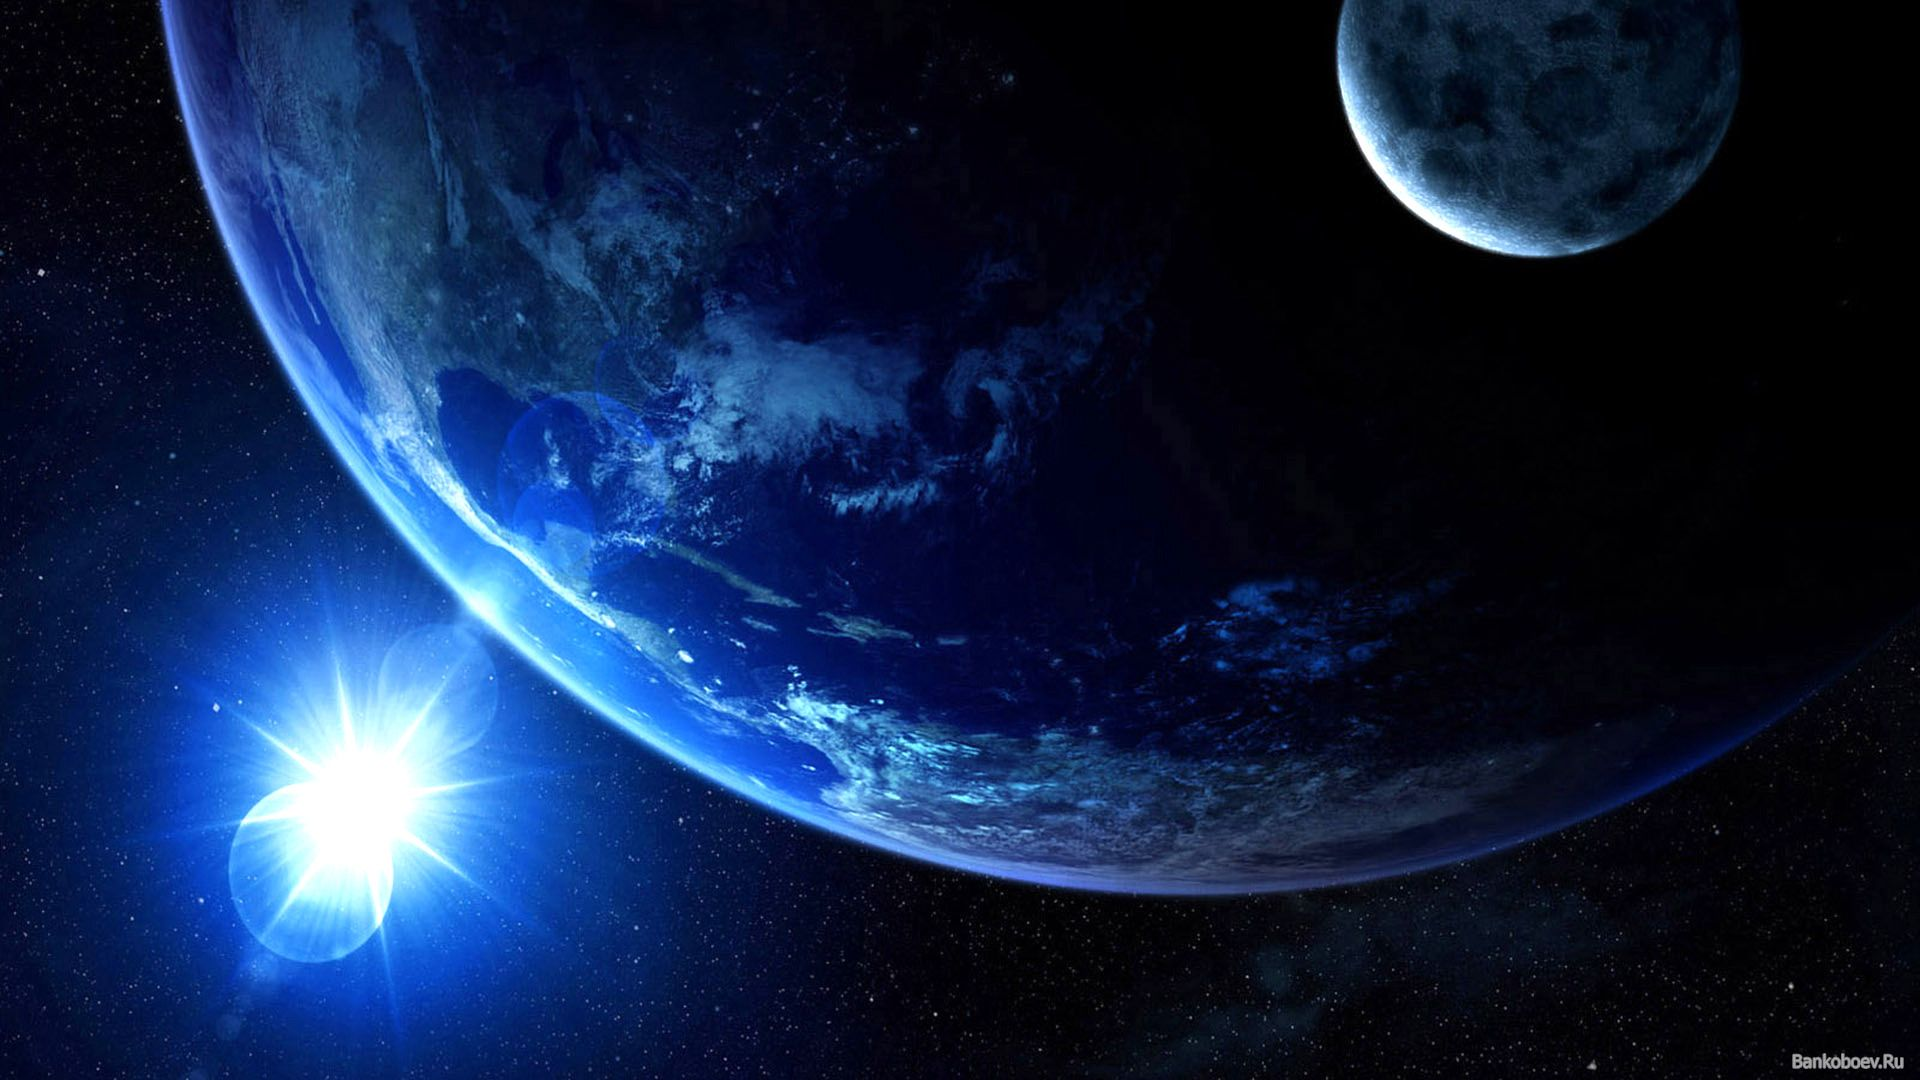 Earth background image